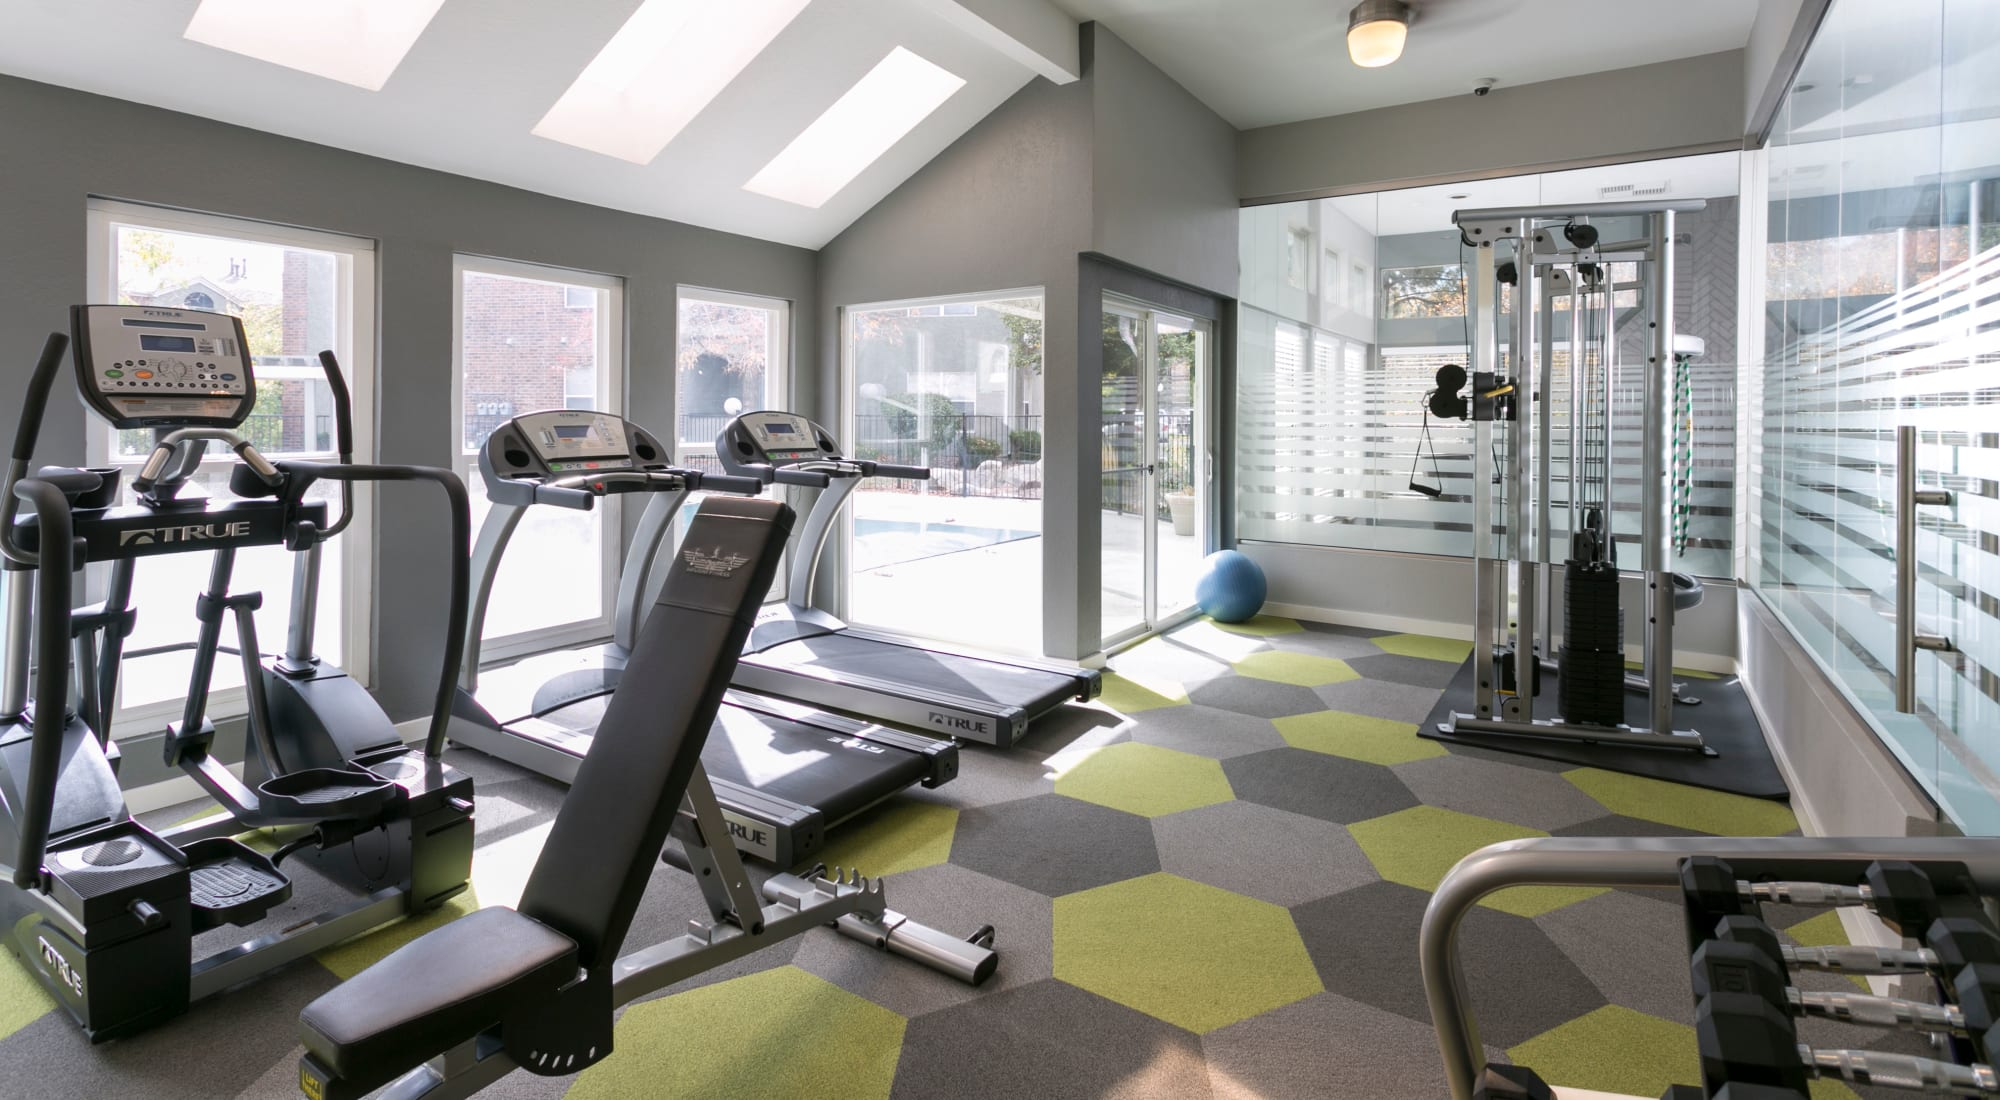 Amenities at Waterfield Court Apartment Homes in Aurora, Colorado